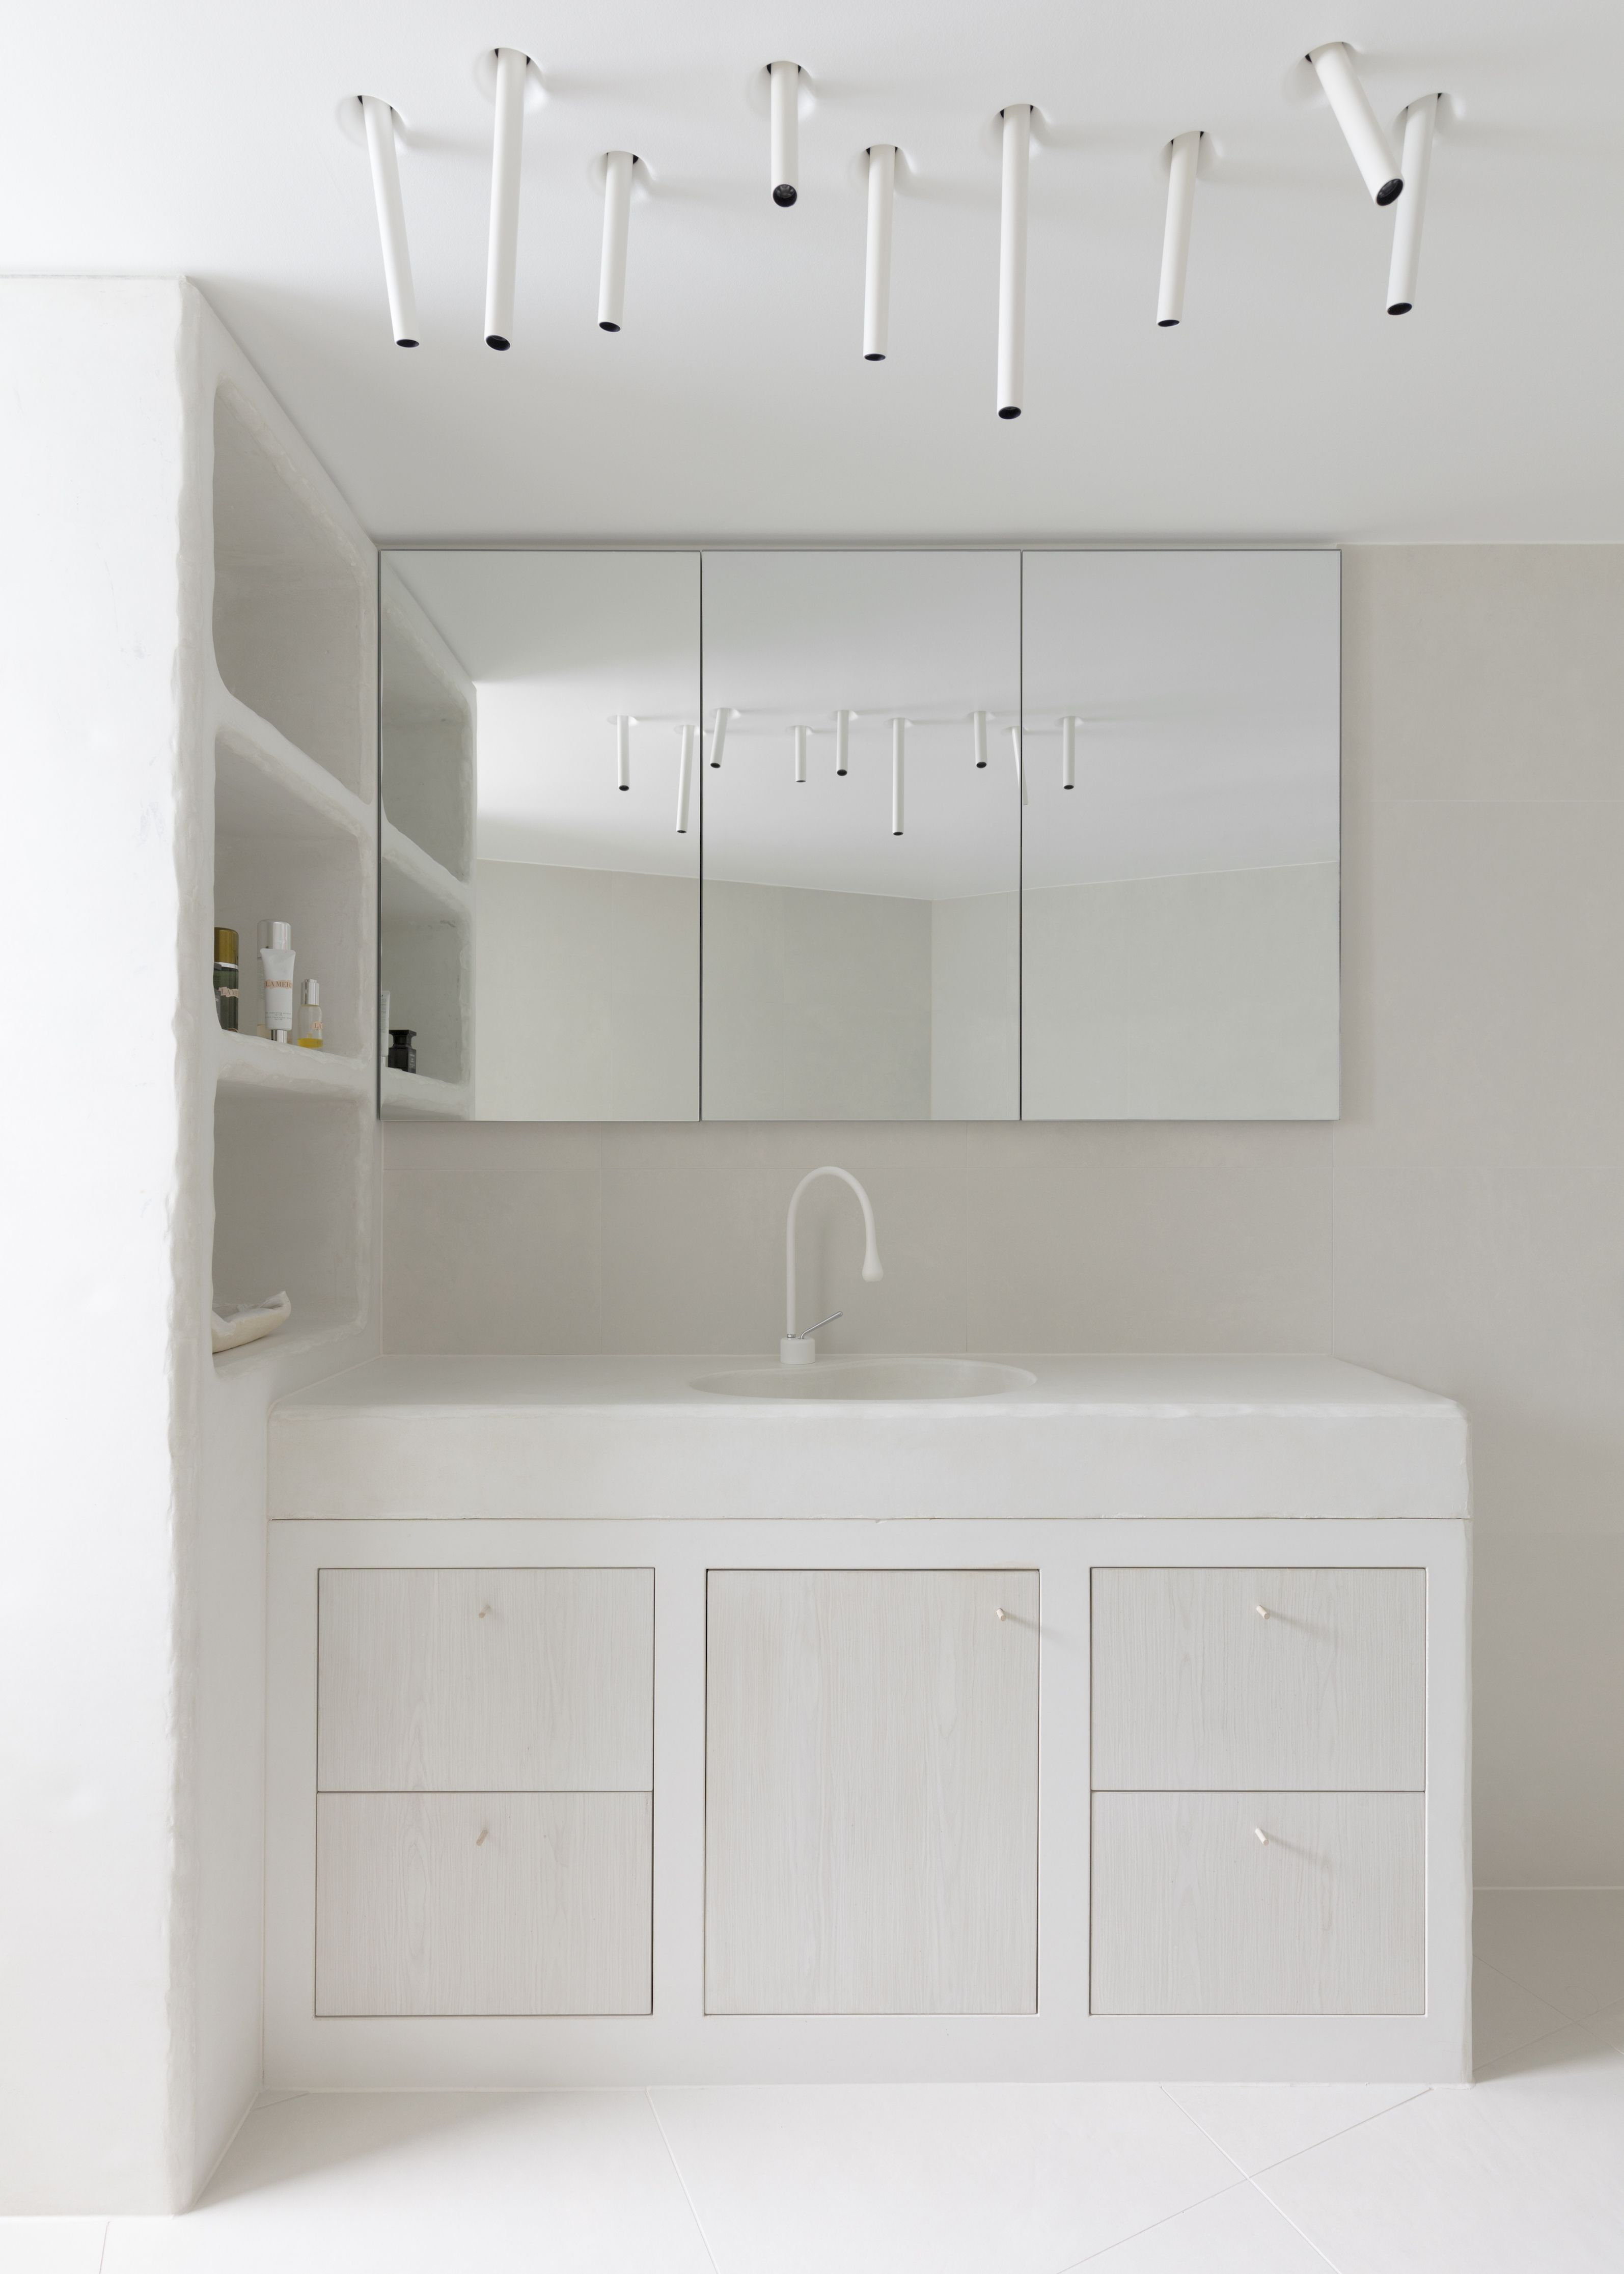 Ensuite Bathroom Vernon 1000+ images about vernon residence on pinterest